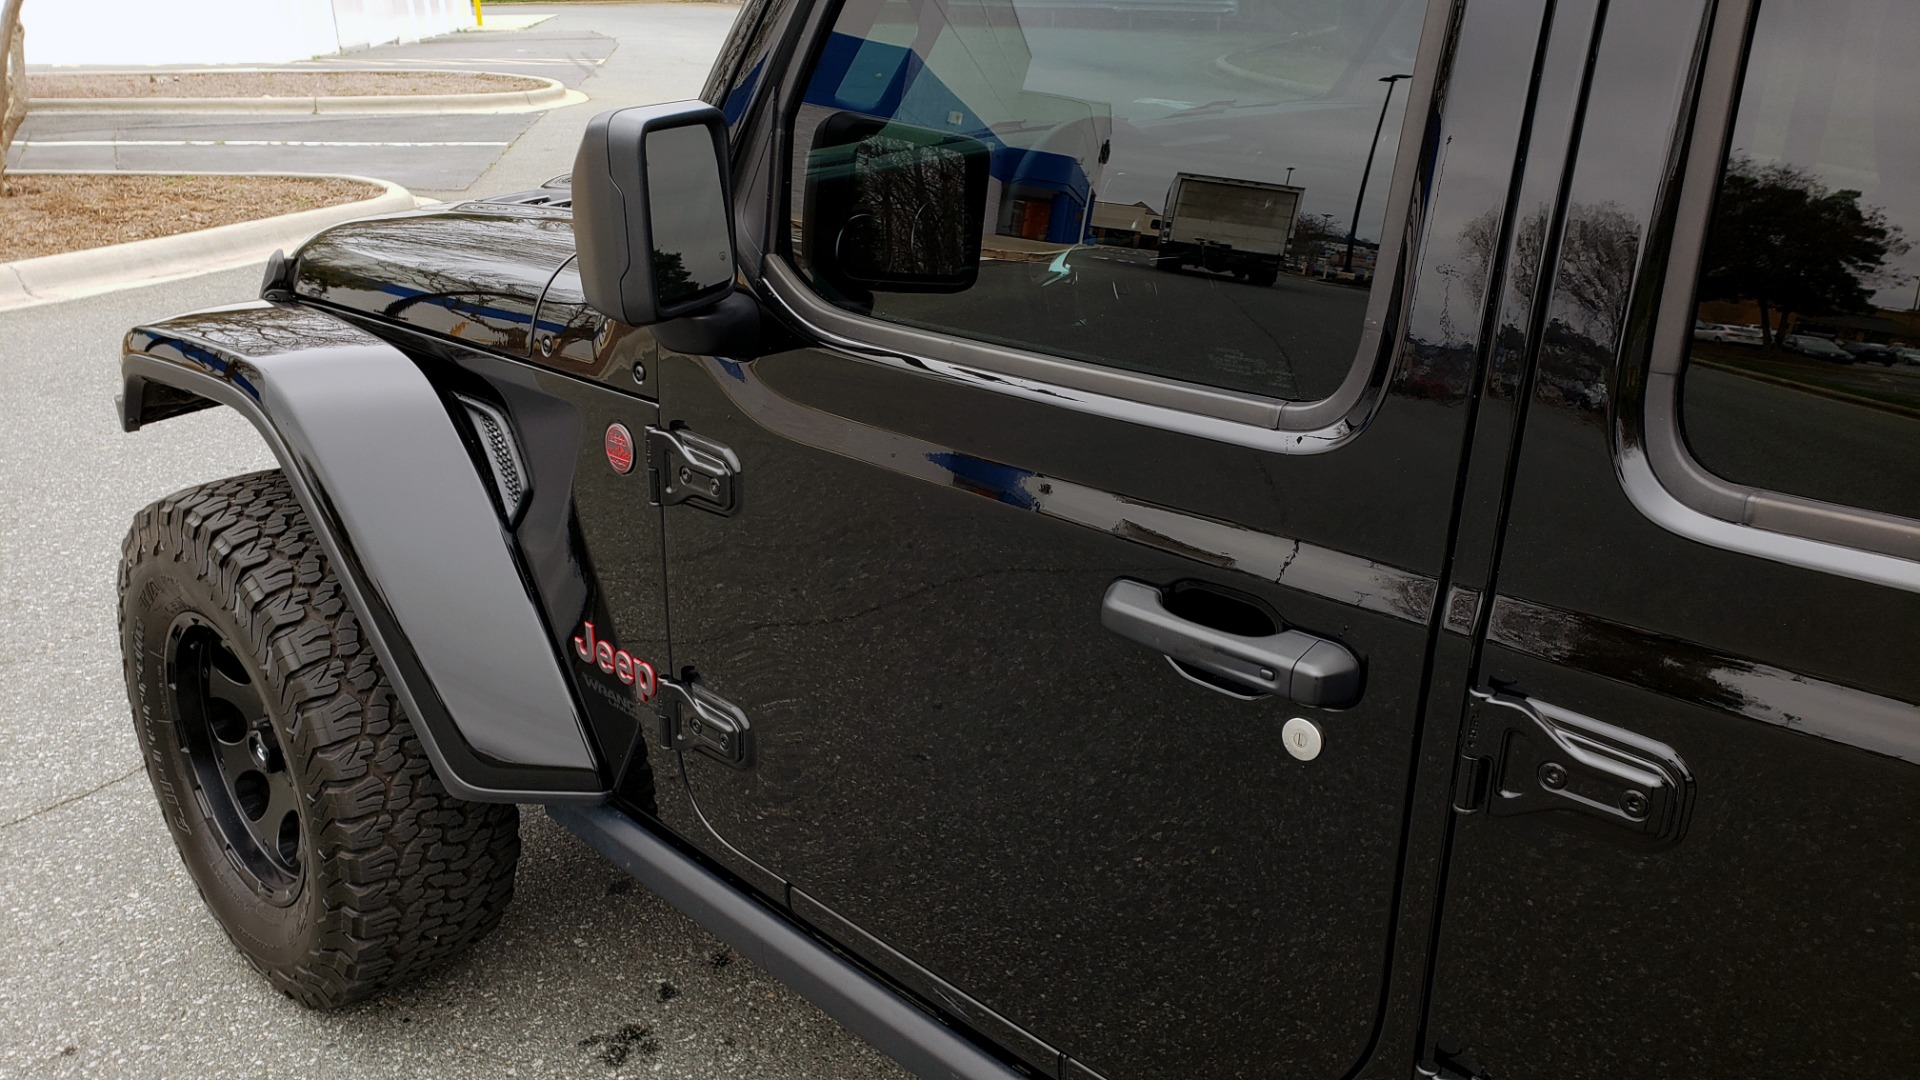 Used 2019 Jeep WRANGLER UNLIMITED RUBICON 4WD / V6 / 8-SPD AUTO / NAV / PWR TOP / REARVIEW for sale Sold at Formula Imports in Charlotte NC 28227 7